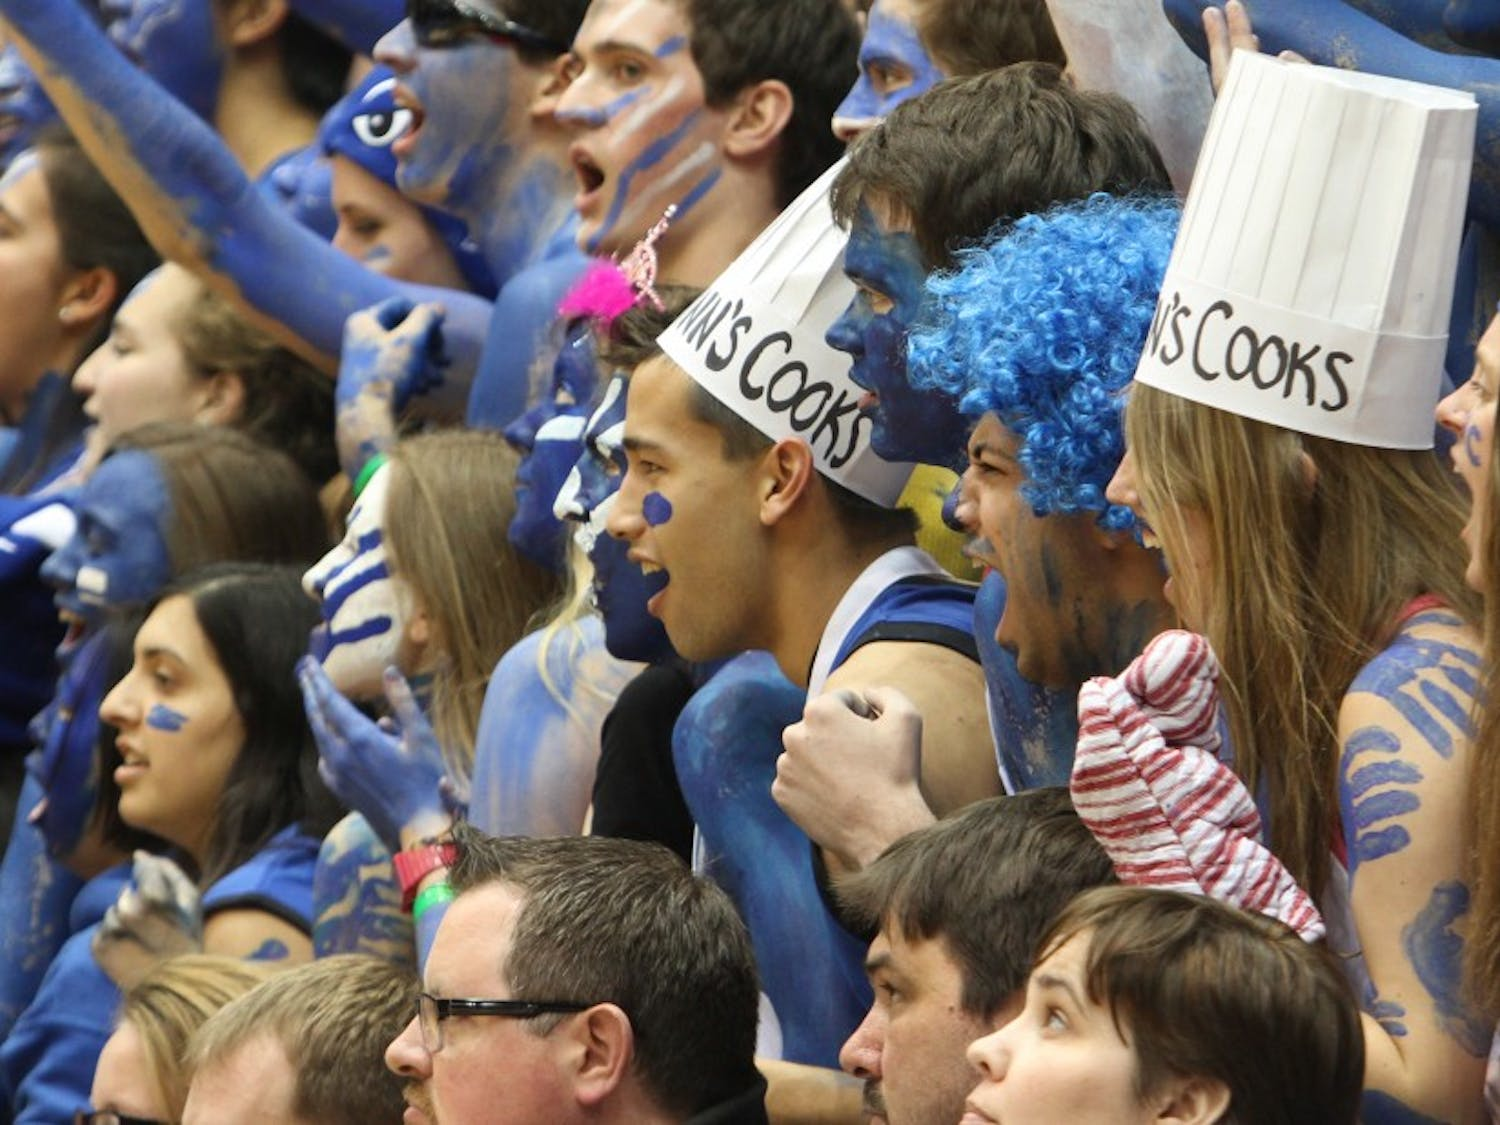 """Senior Matt Pun, pictured middle in the """"Quinn's Cooks"""" hat, served as sports managing editor."""